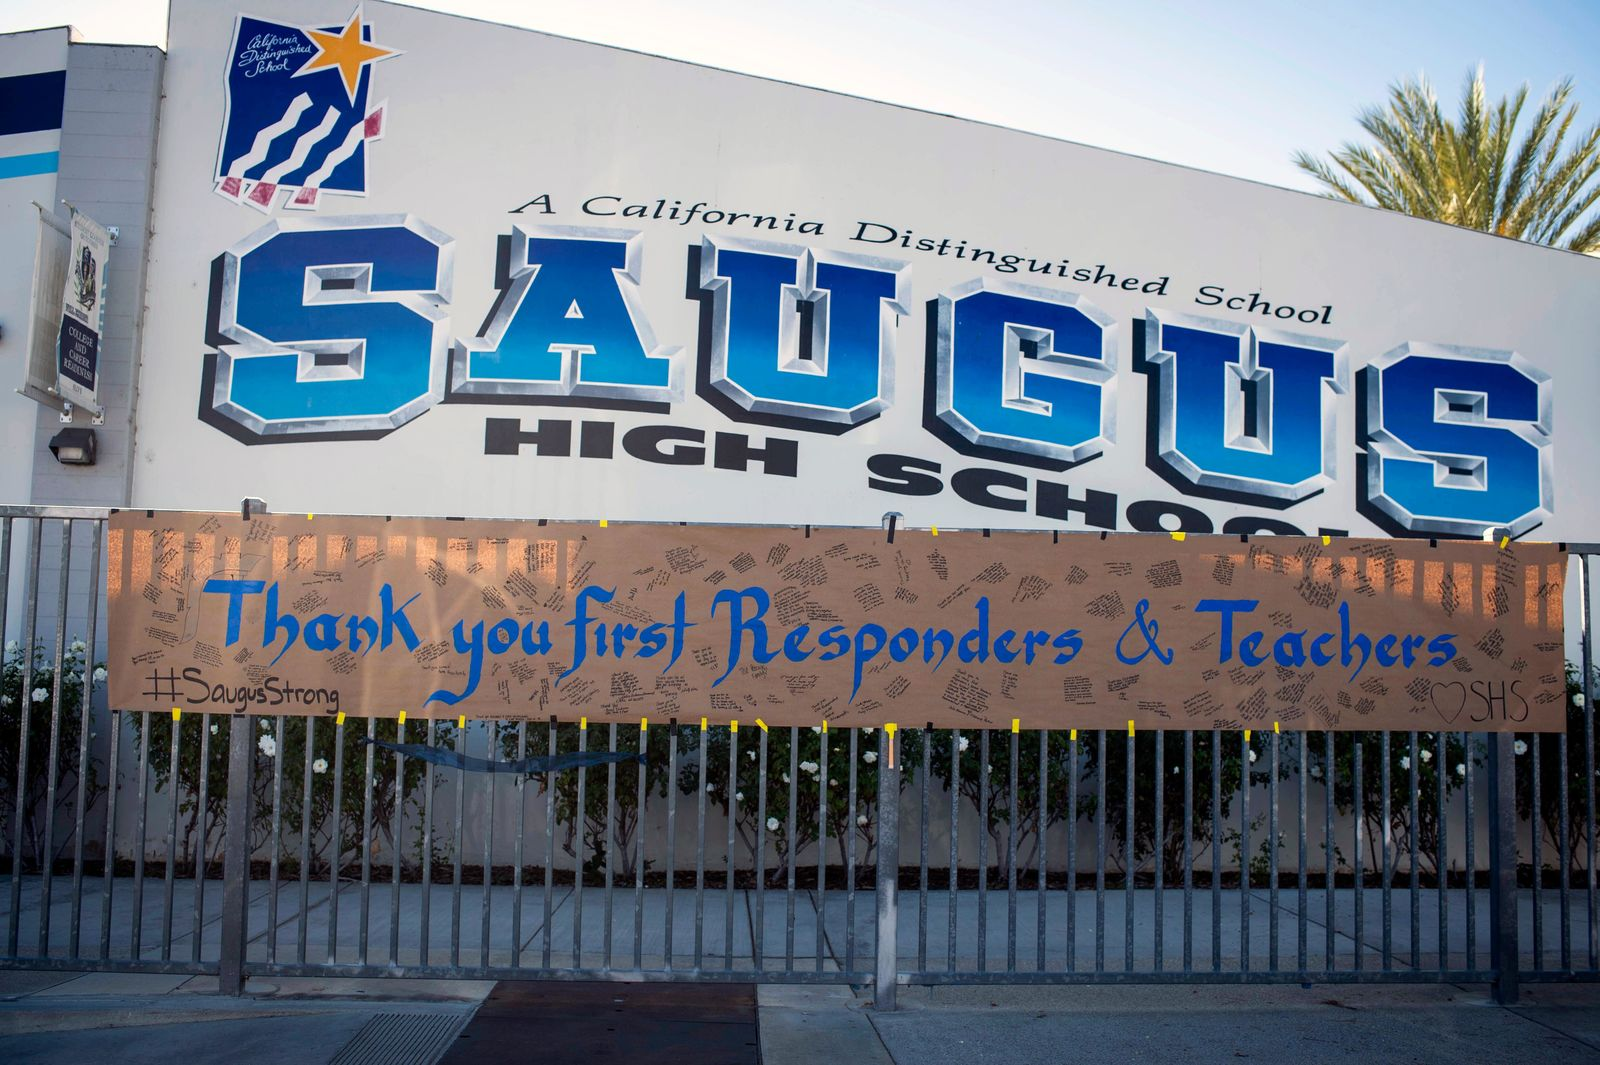 A sign thanking first responders and teachers hangs, Monday, Nov. 18, 2019, after two students were killed during a shooting at Saugus High School in Santa Clarita, Calif., several days earlier. Students will return to school on Dec. 2. (Sarah Reingewirtz/The Orange County Register via AP)